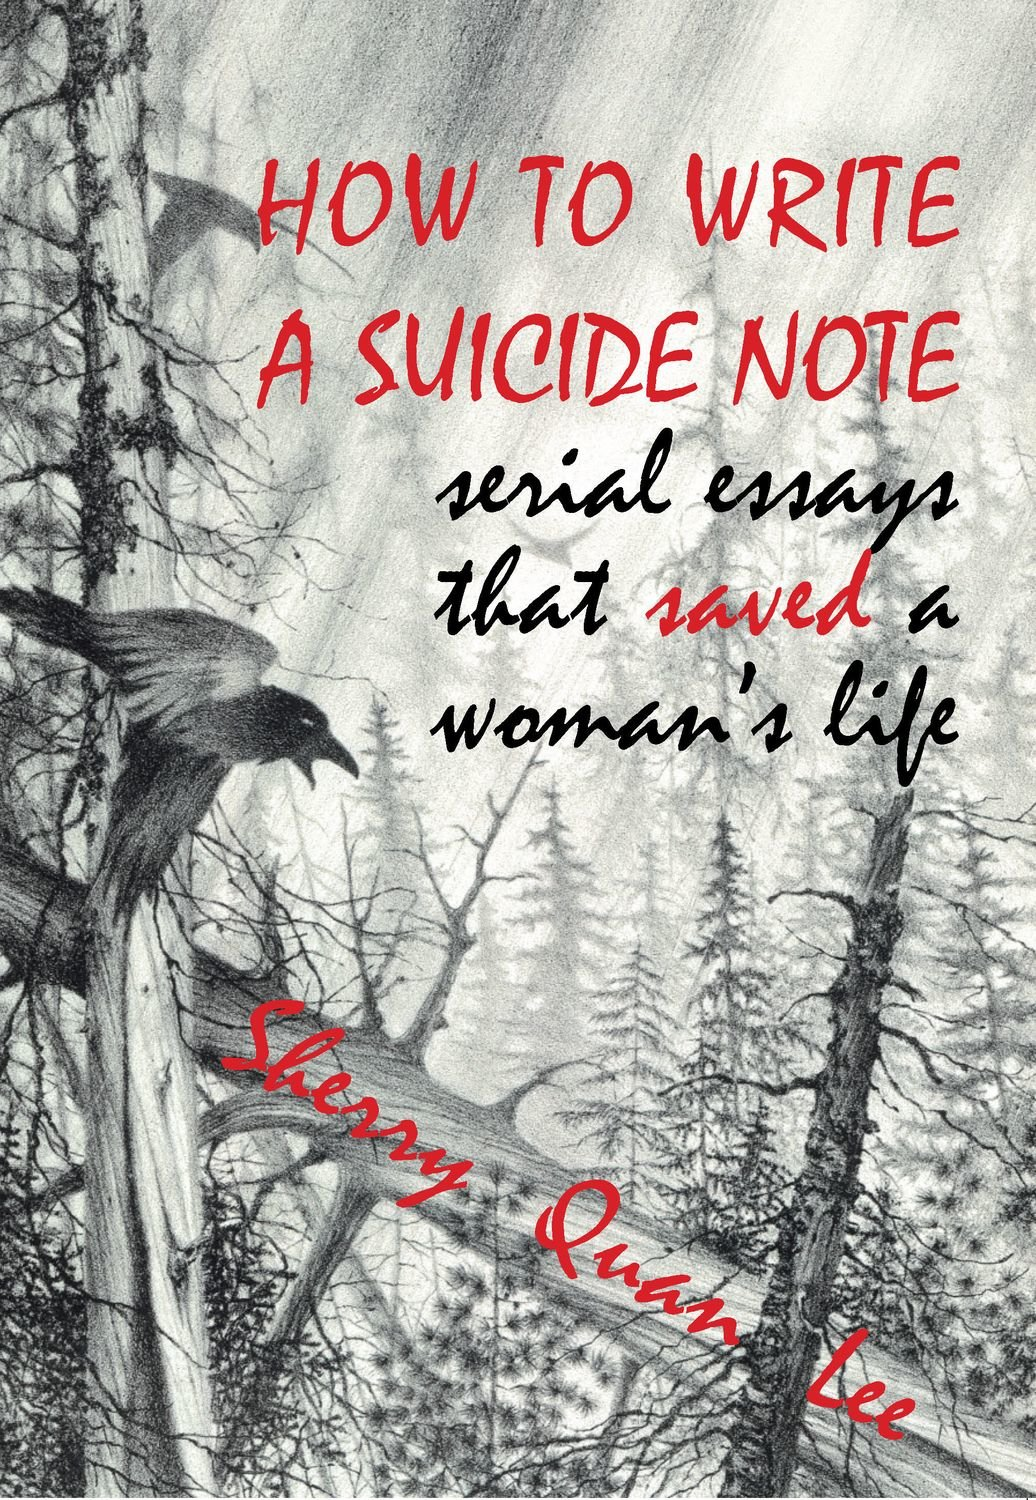 How to Write a Suicide Note: Serial Essays that Saved a Woman's Life